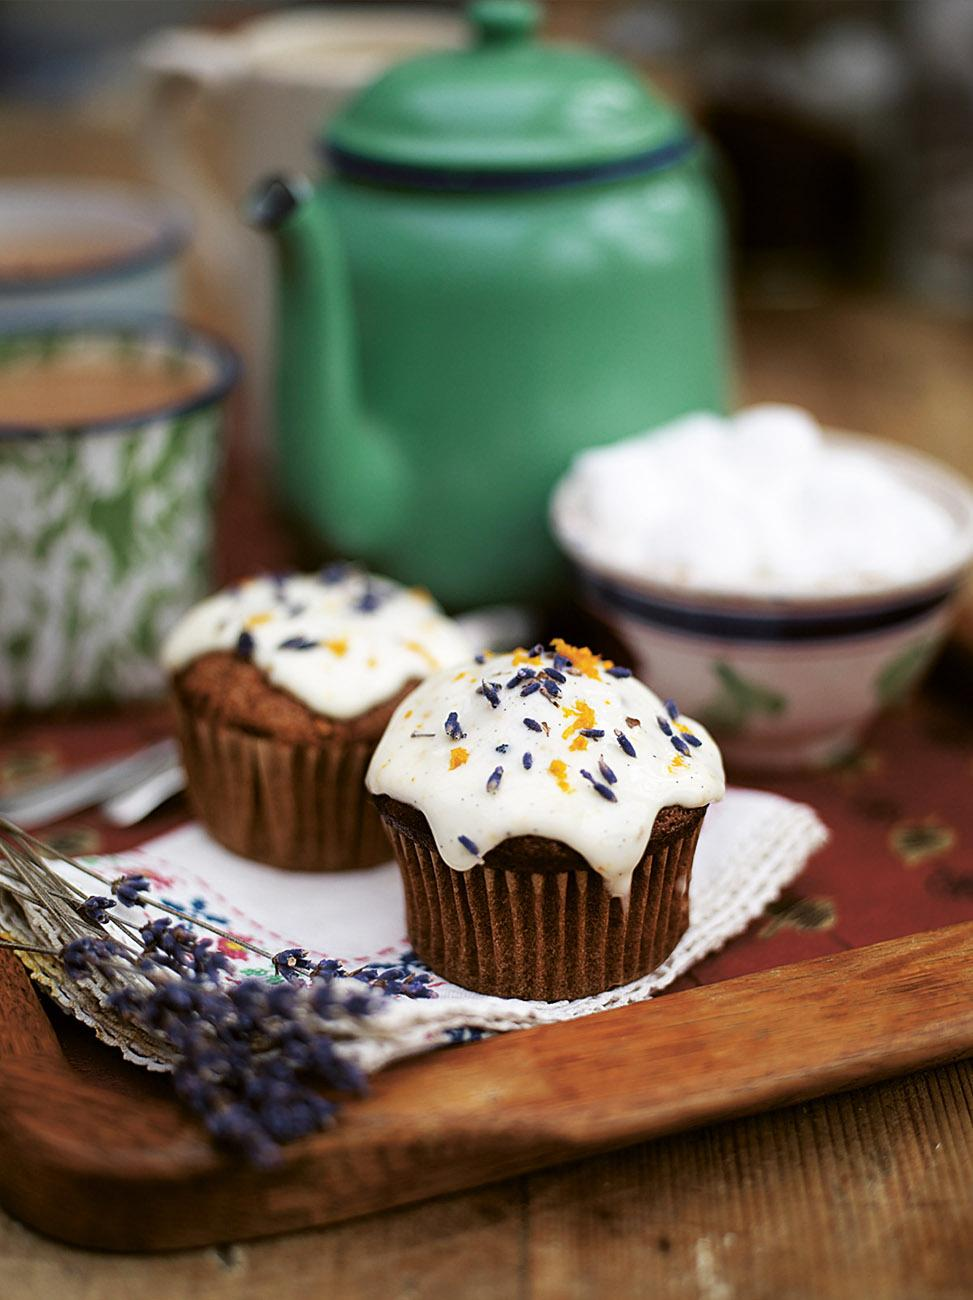 Butternut squash muffins with a frosty top